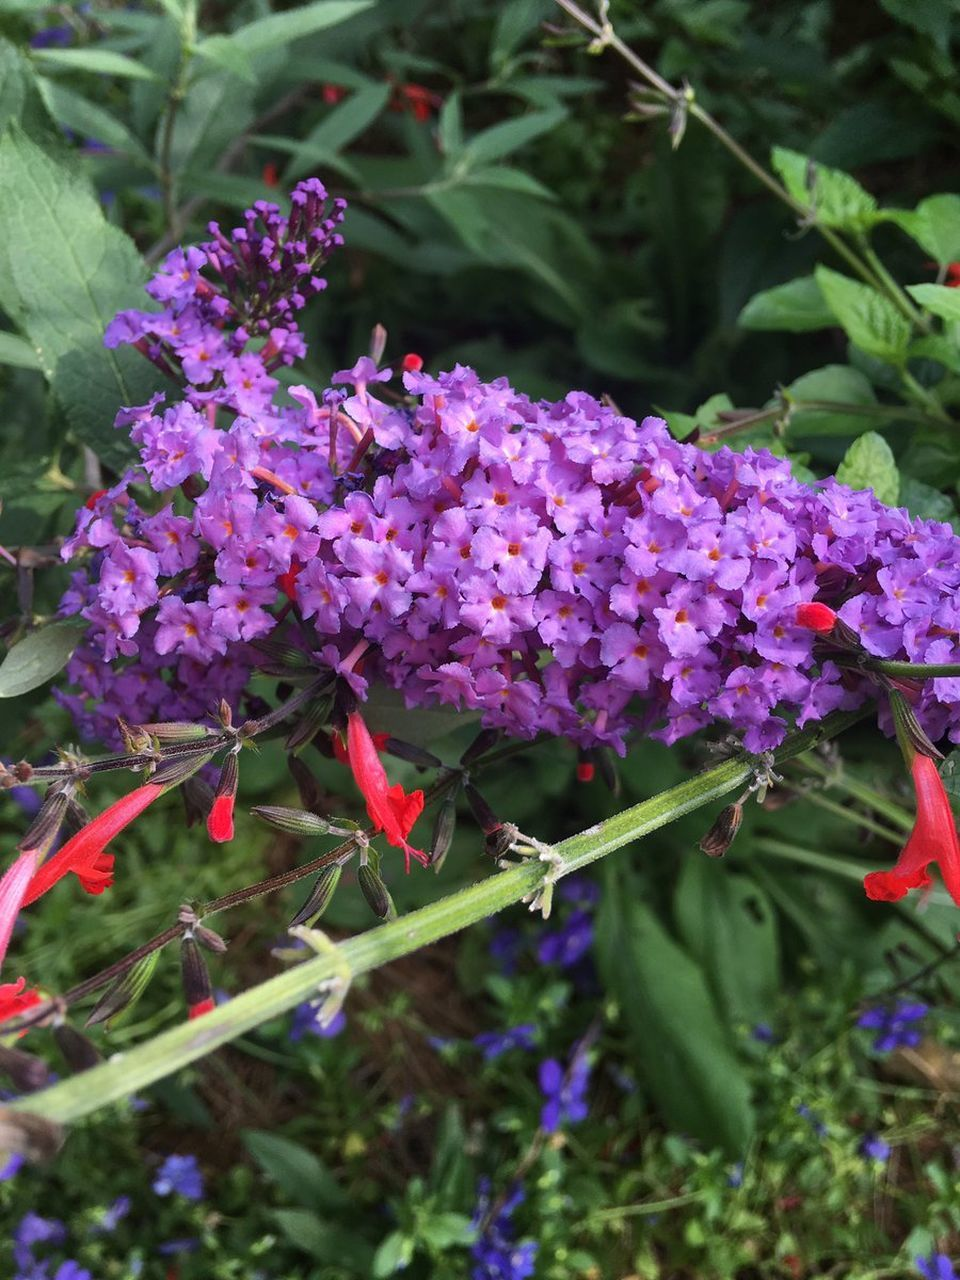 flower, purple, growth, nature, freshness, beauty in nature, fragility, day, plant, no people, outdoors, green color, close-up, lilac